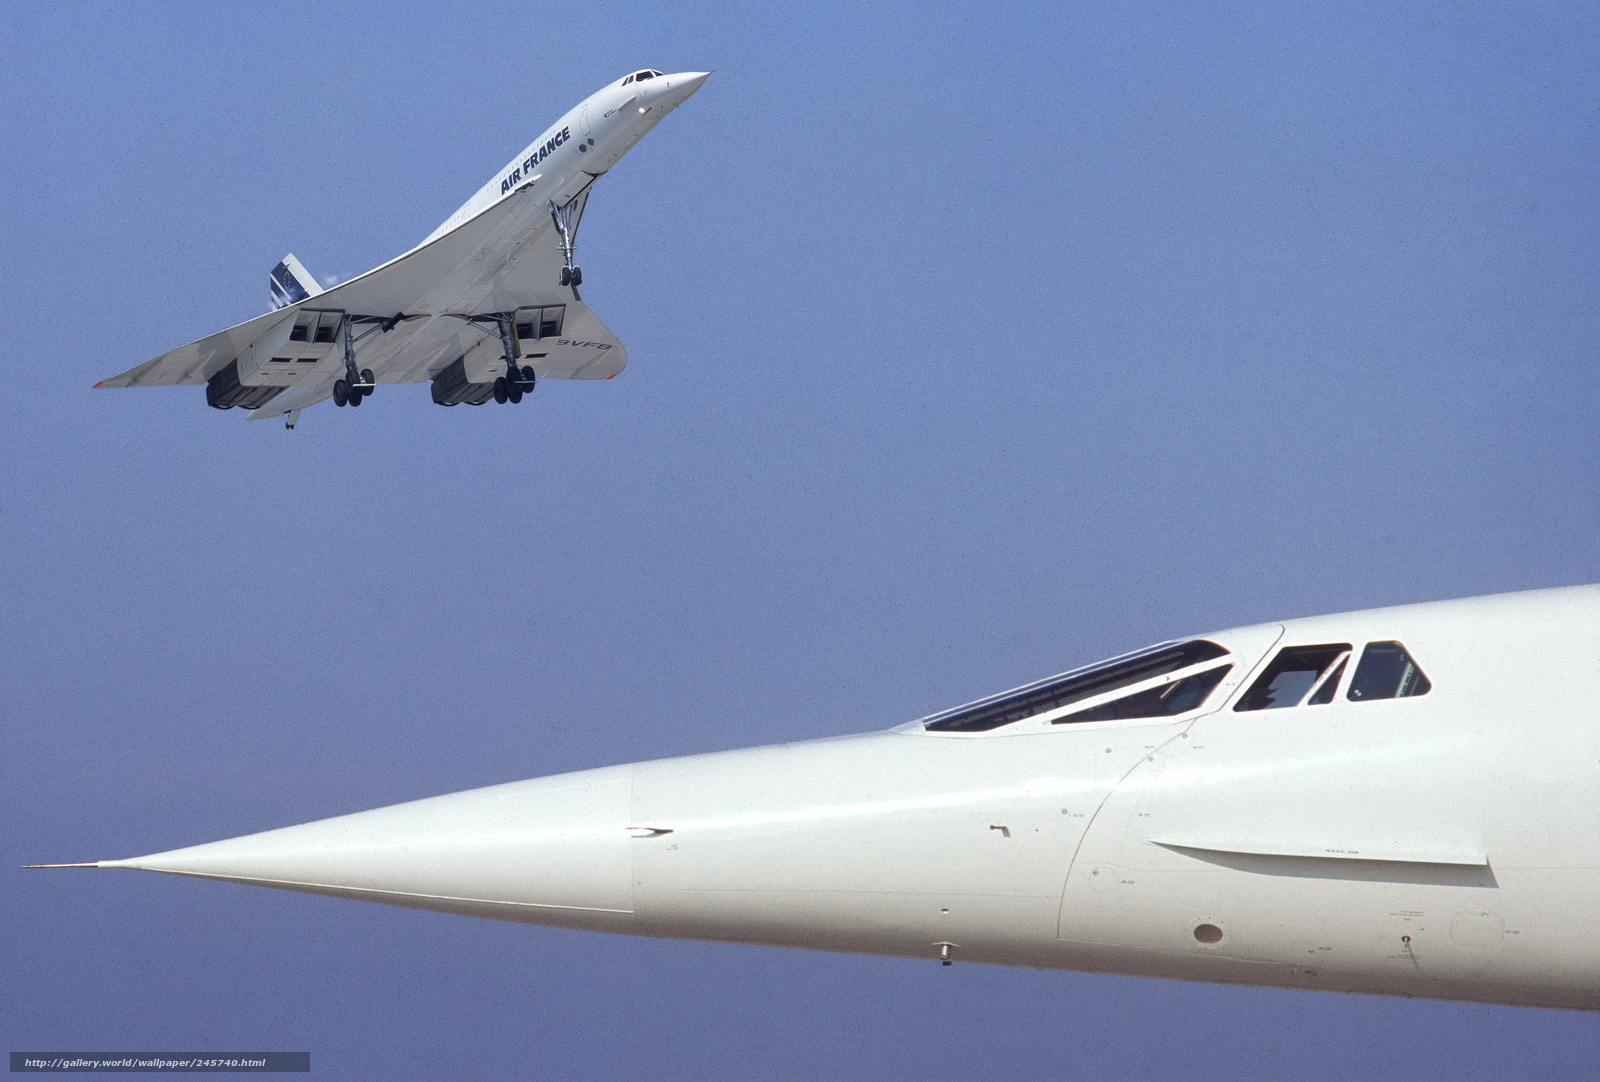 Pictures of the concorde airplane 26 Pictures That Will Make You Have To Laugh To Keep From Crying